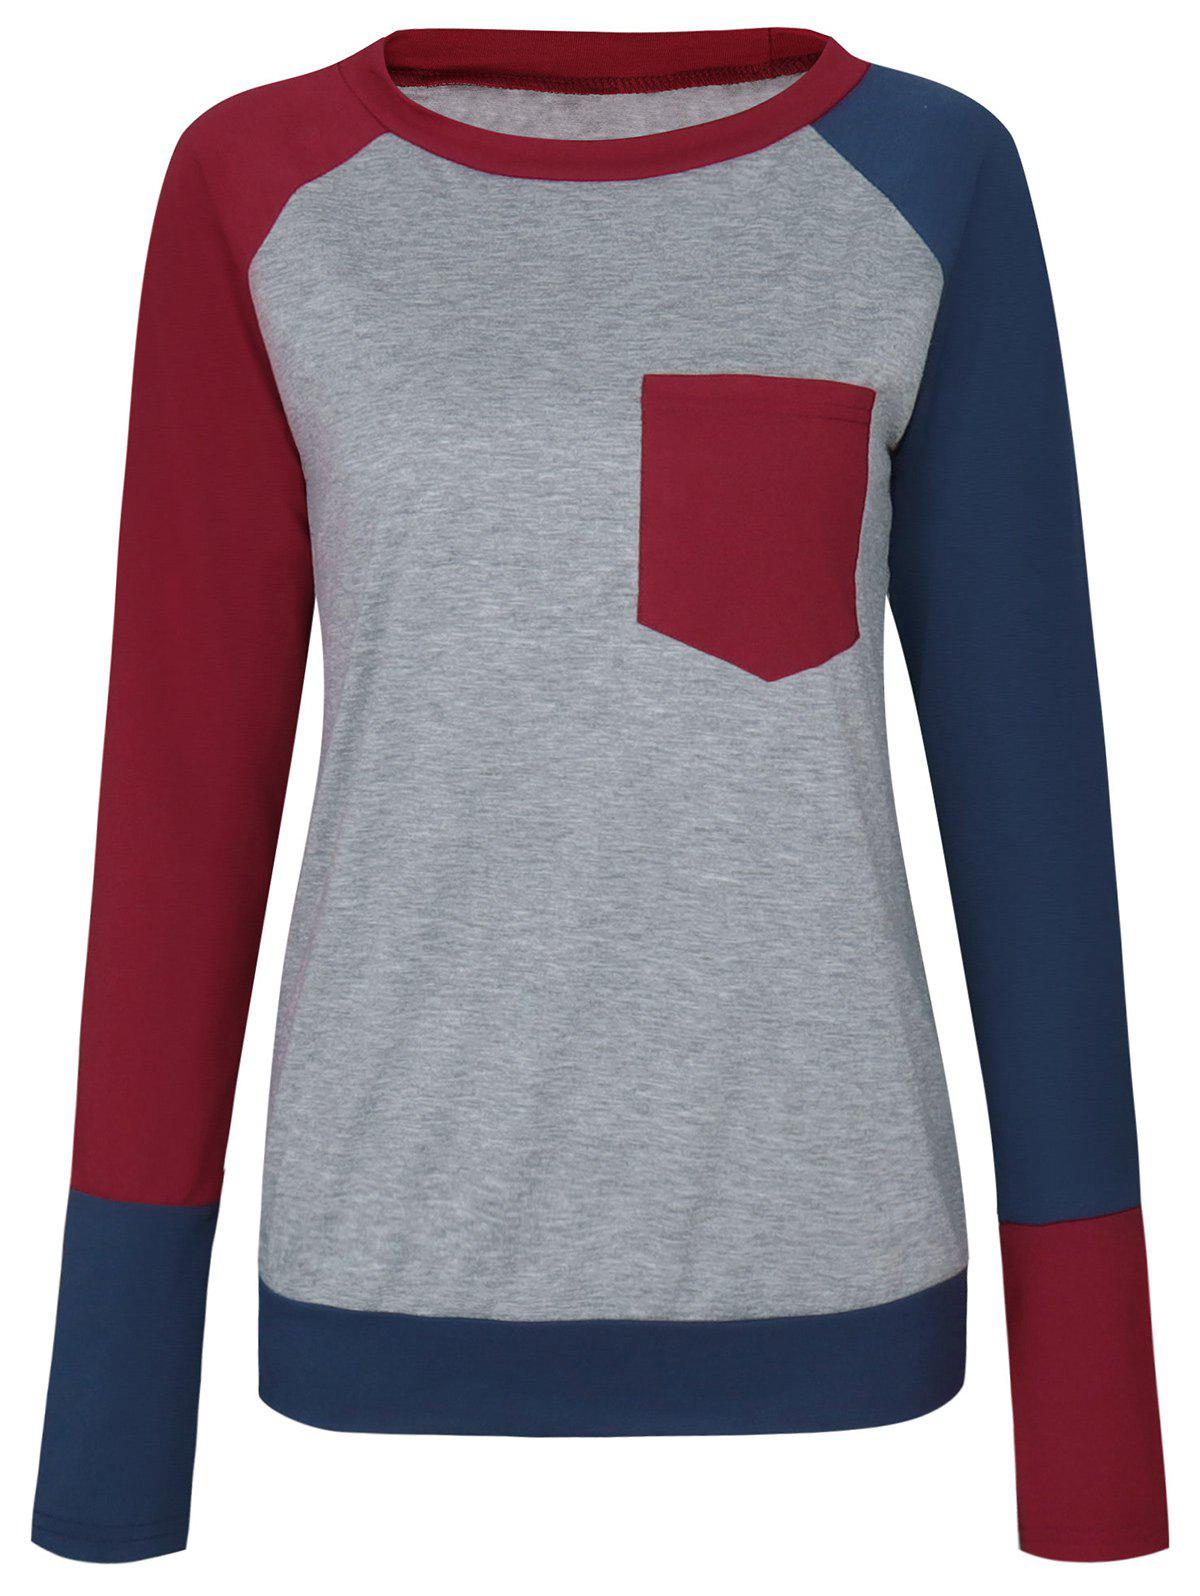 Color Block Raglan Sleeve Pocket T-shirt - WINE RED S